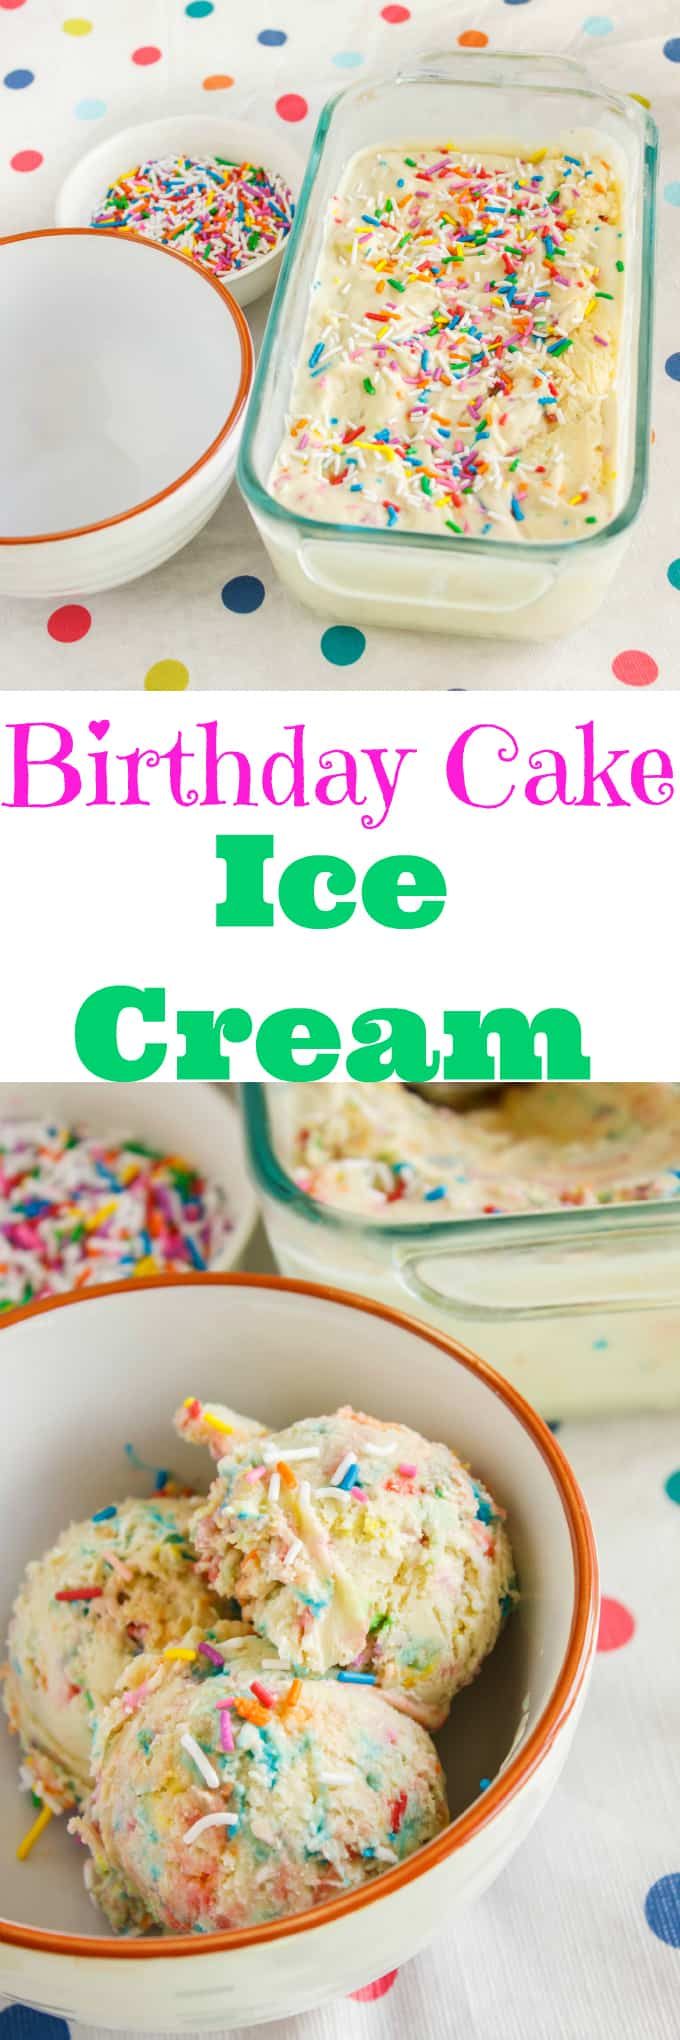 Homemade Birthday Cake Ice Cream 2